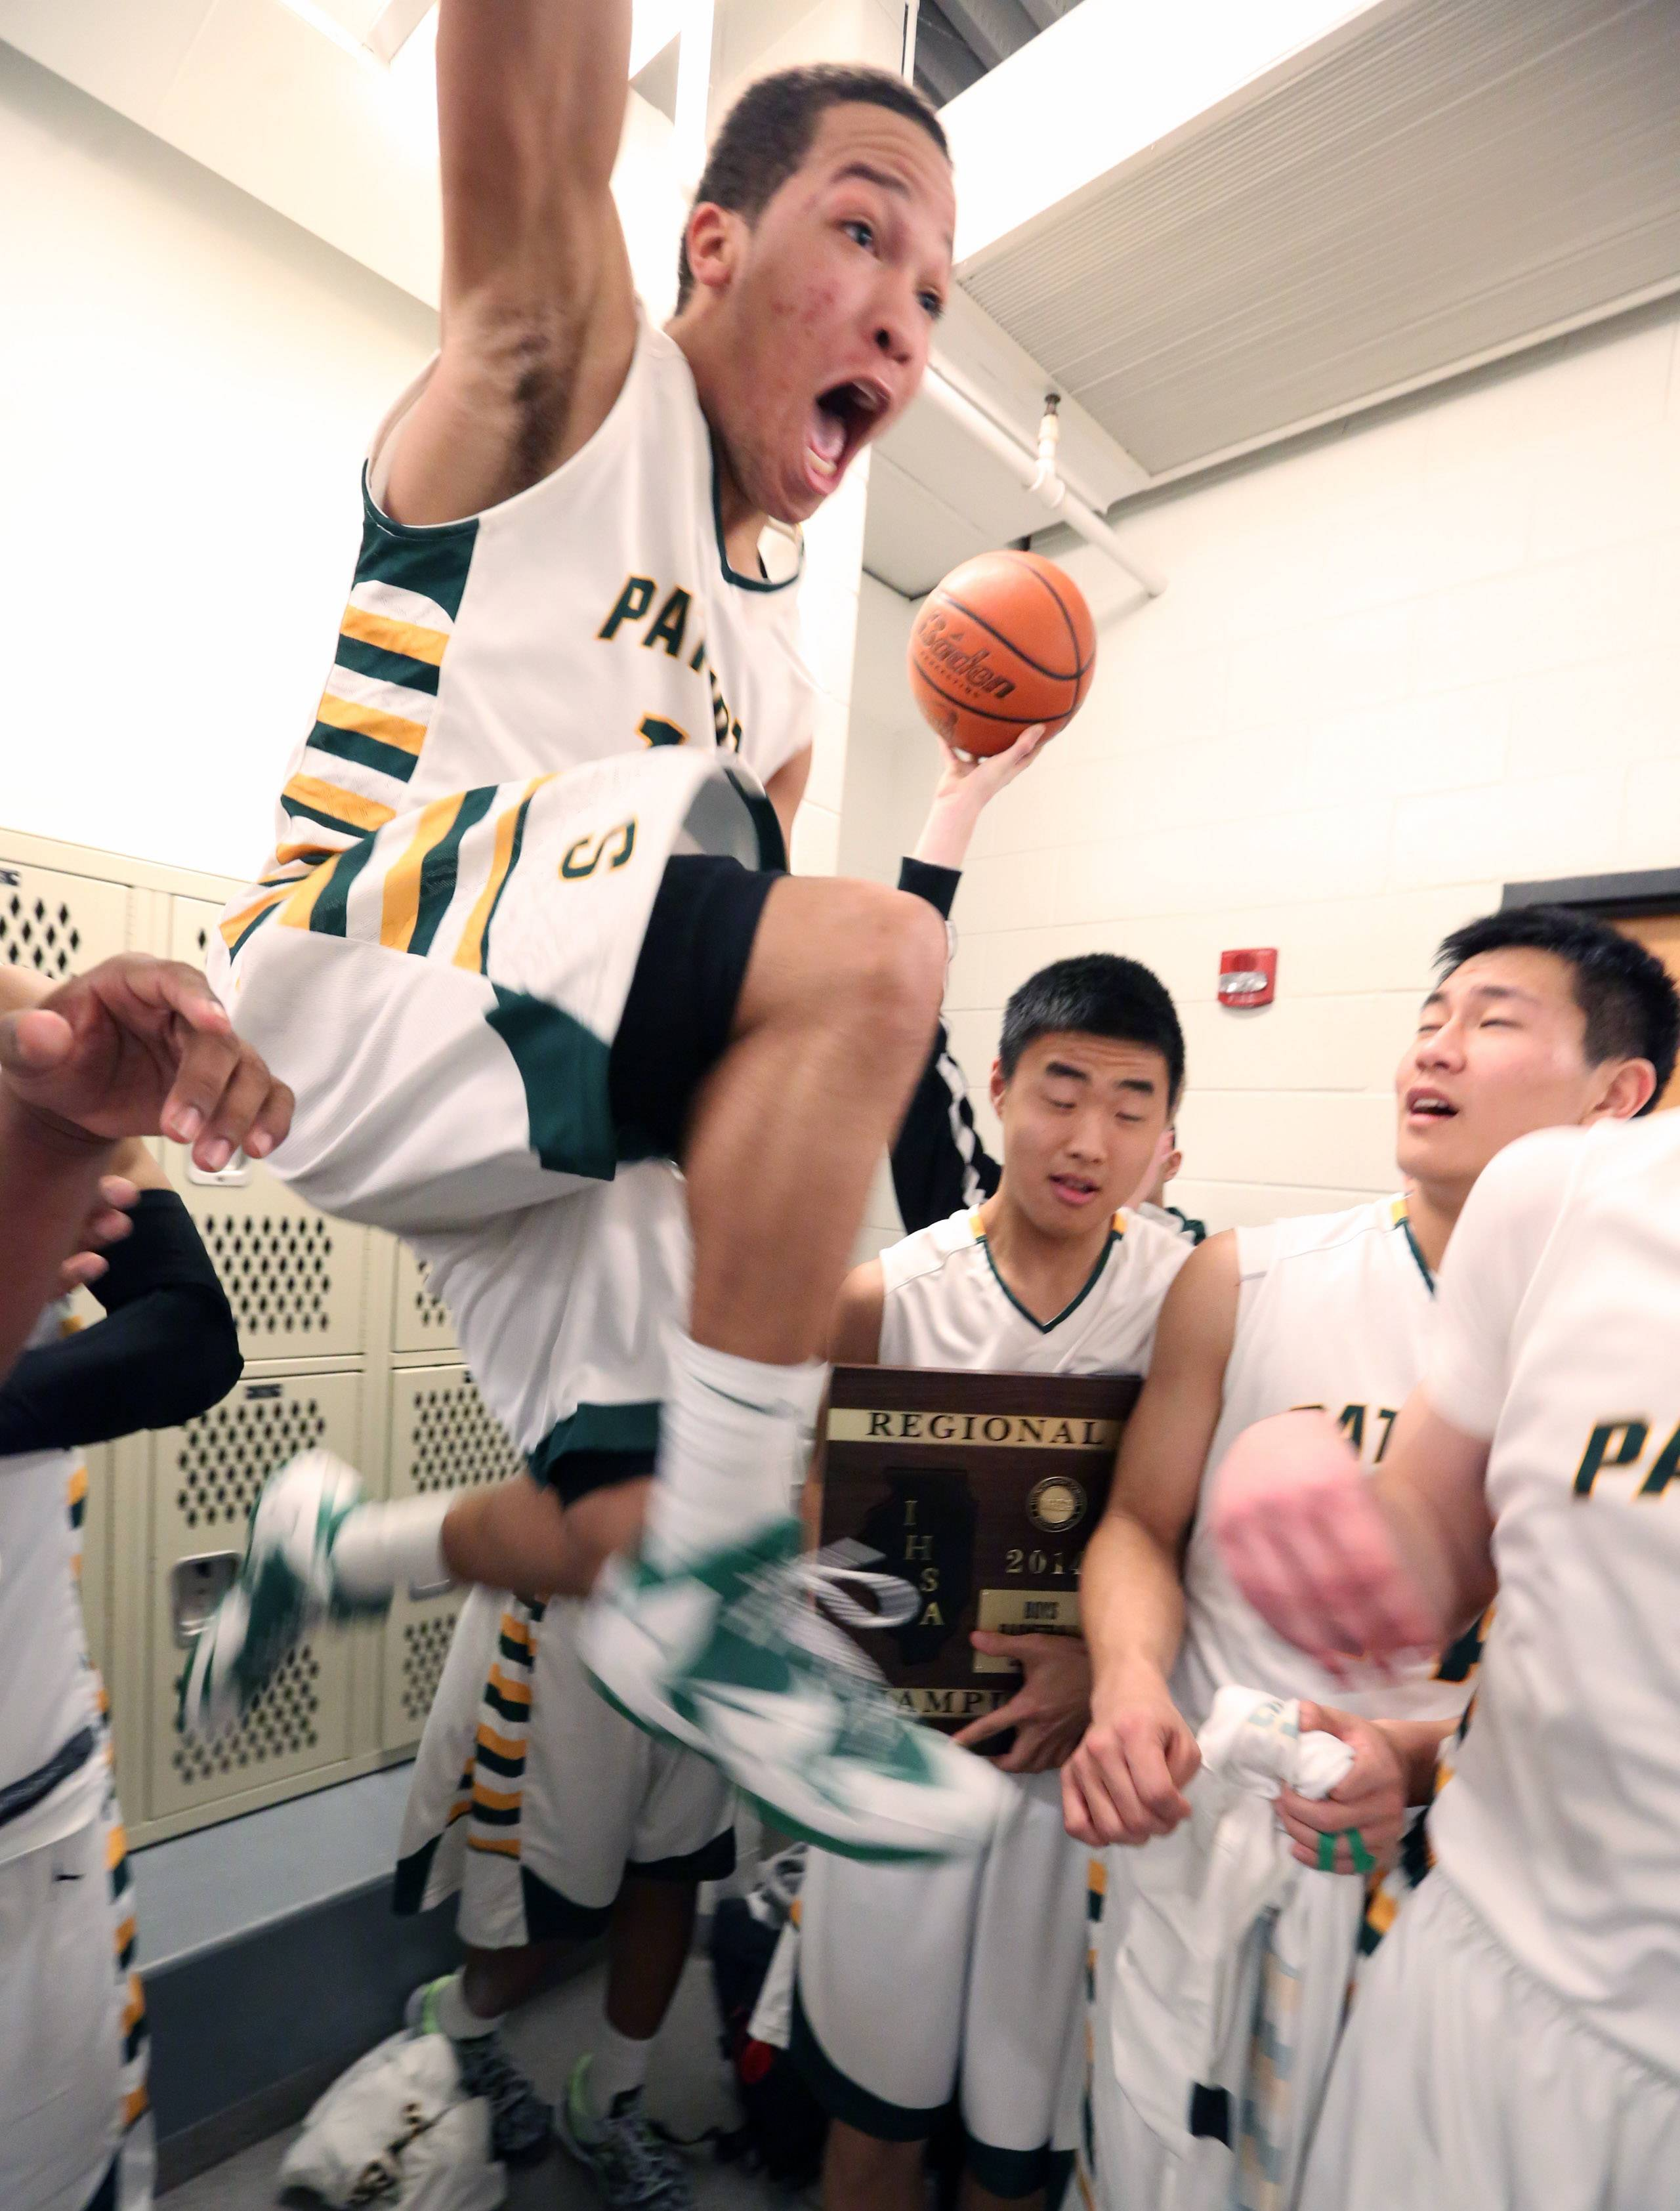 Stevenson guard Jalen Brunson celebrates his team's 79-59 win over Warren Friday at the Class 4A regional final in McHenry.